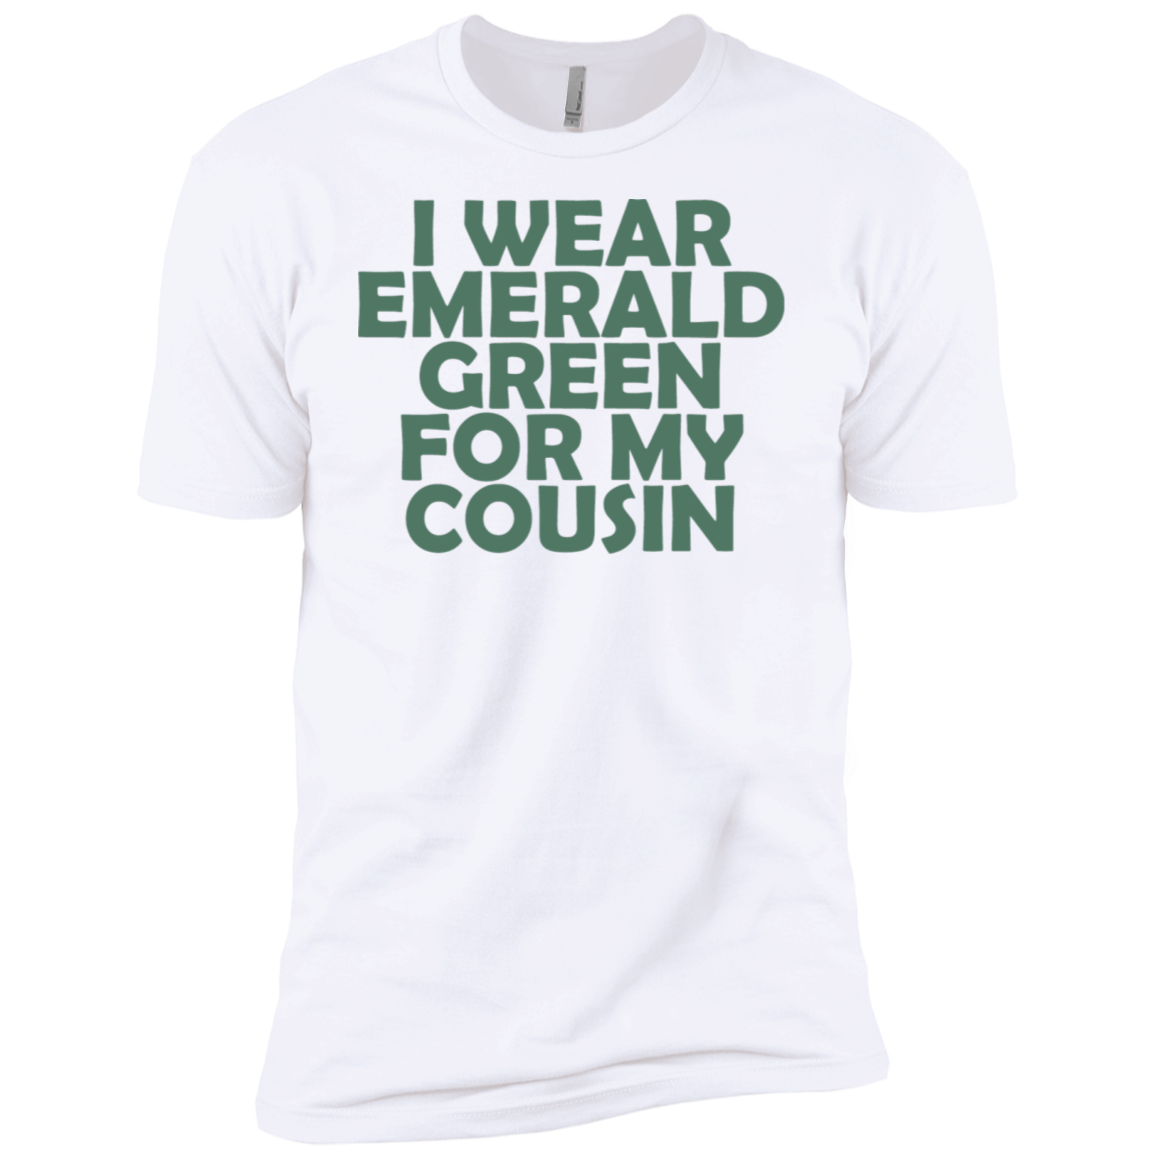 I Wear Emerald Green For My Cousin Men's Classic Tee